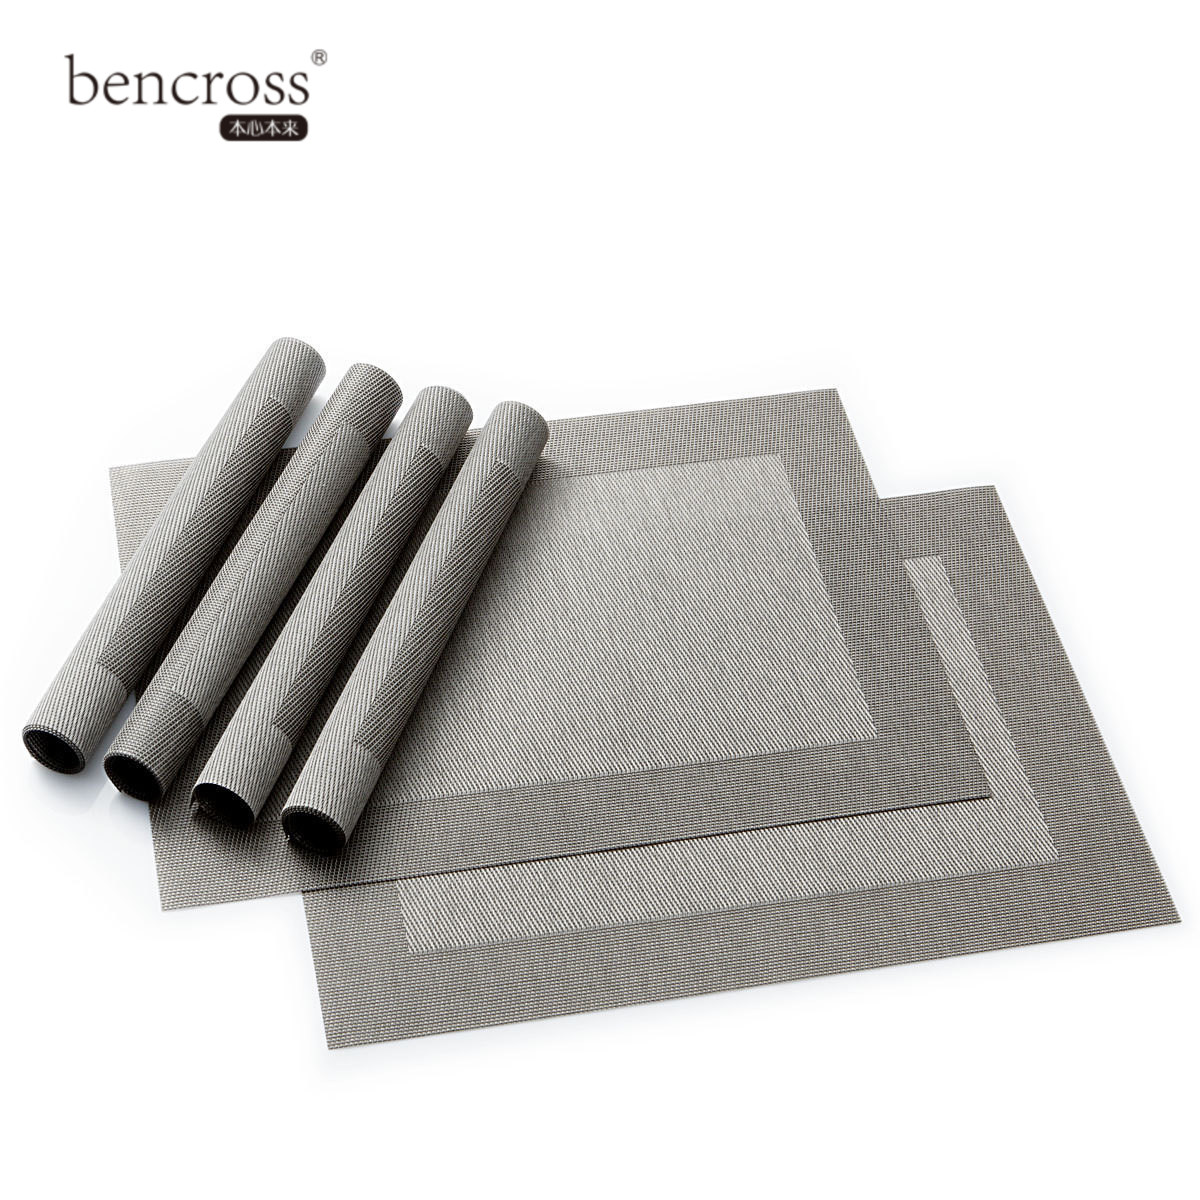 USD Bencross Western Food Pad European PVC Thick Nonslip - Thick table pad